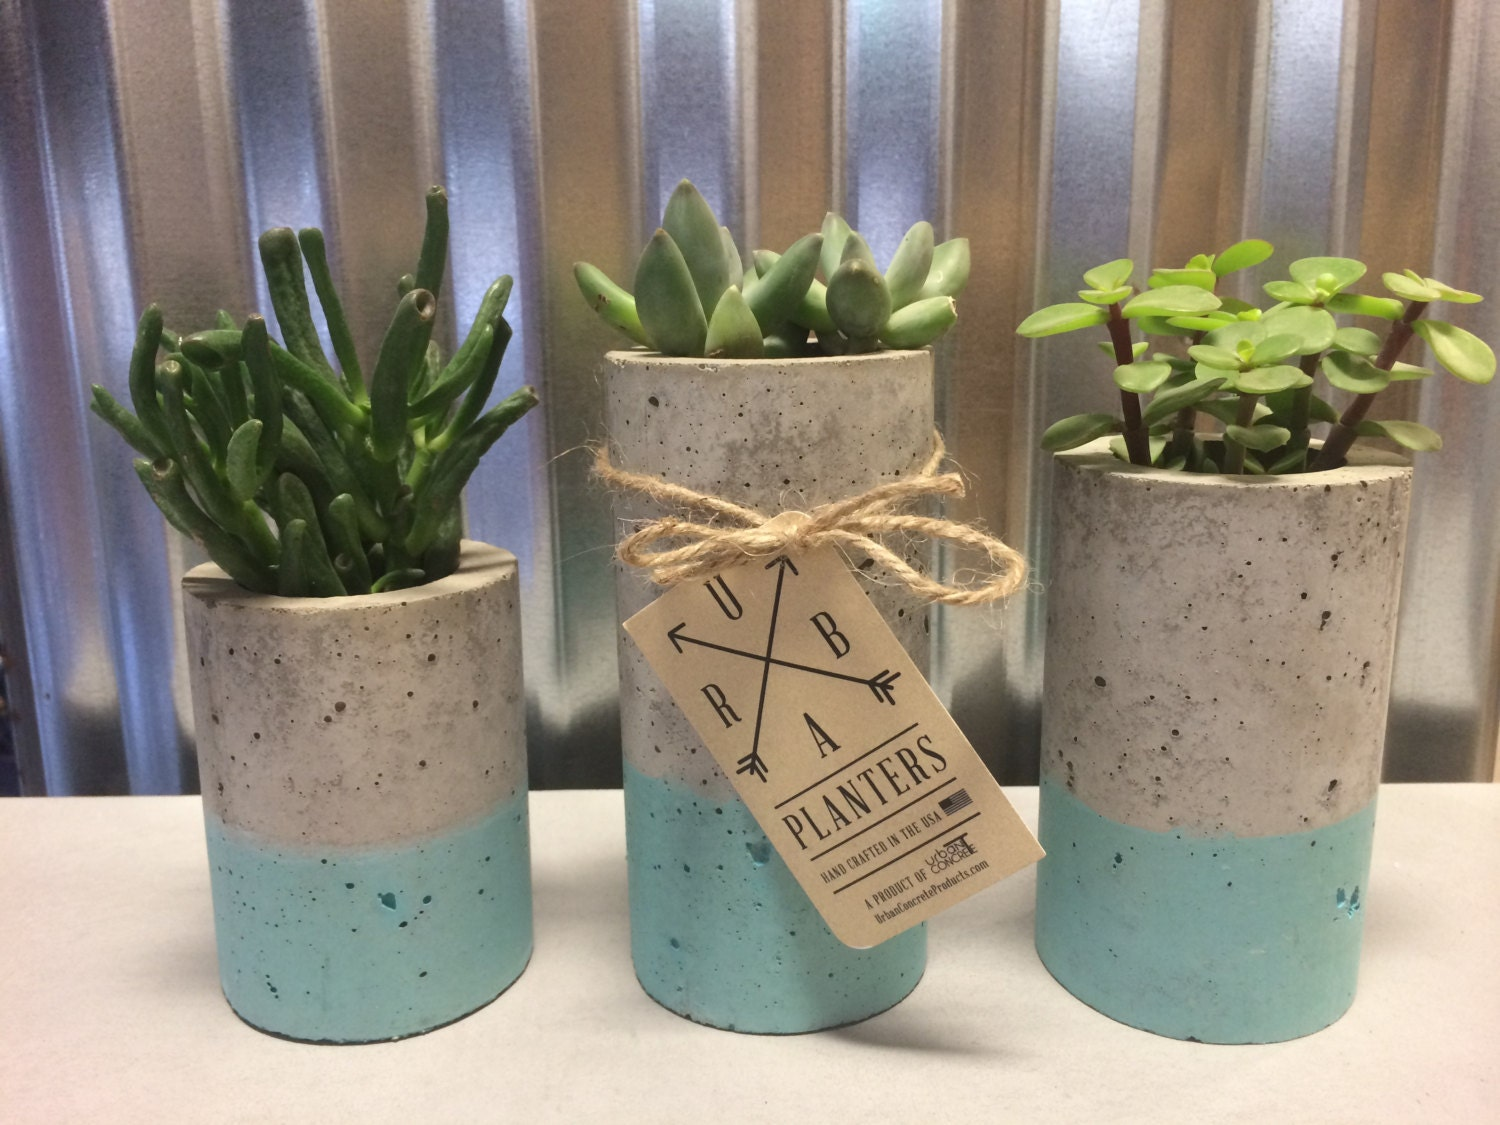 Concrete Succulent Planters Urba Planters Set Of 3 By